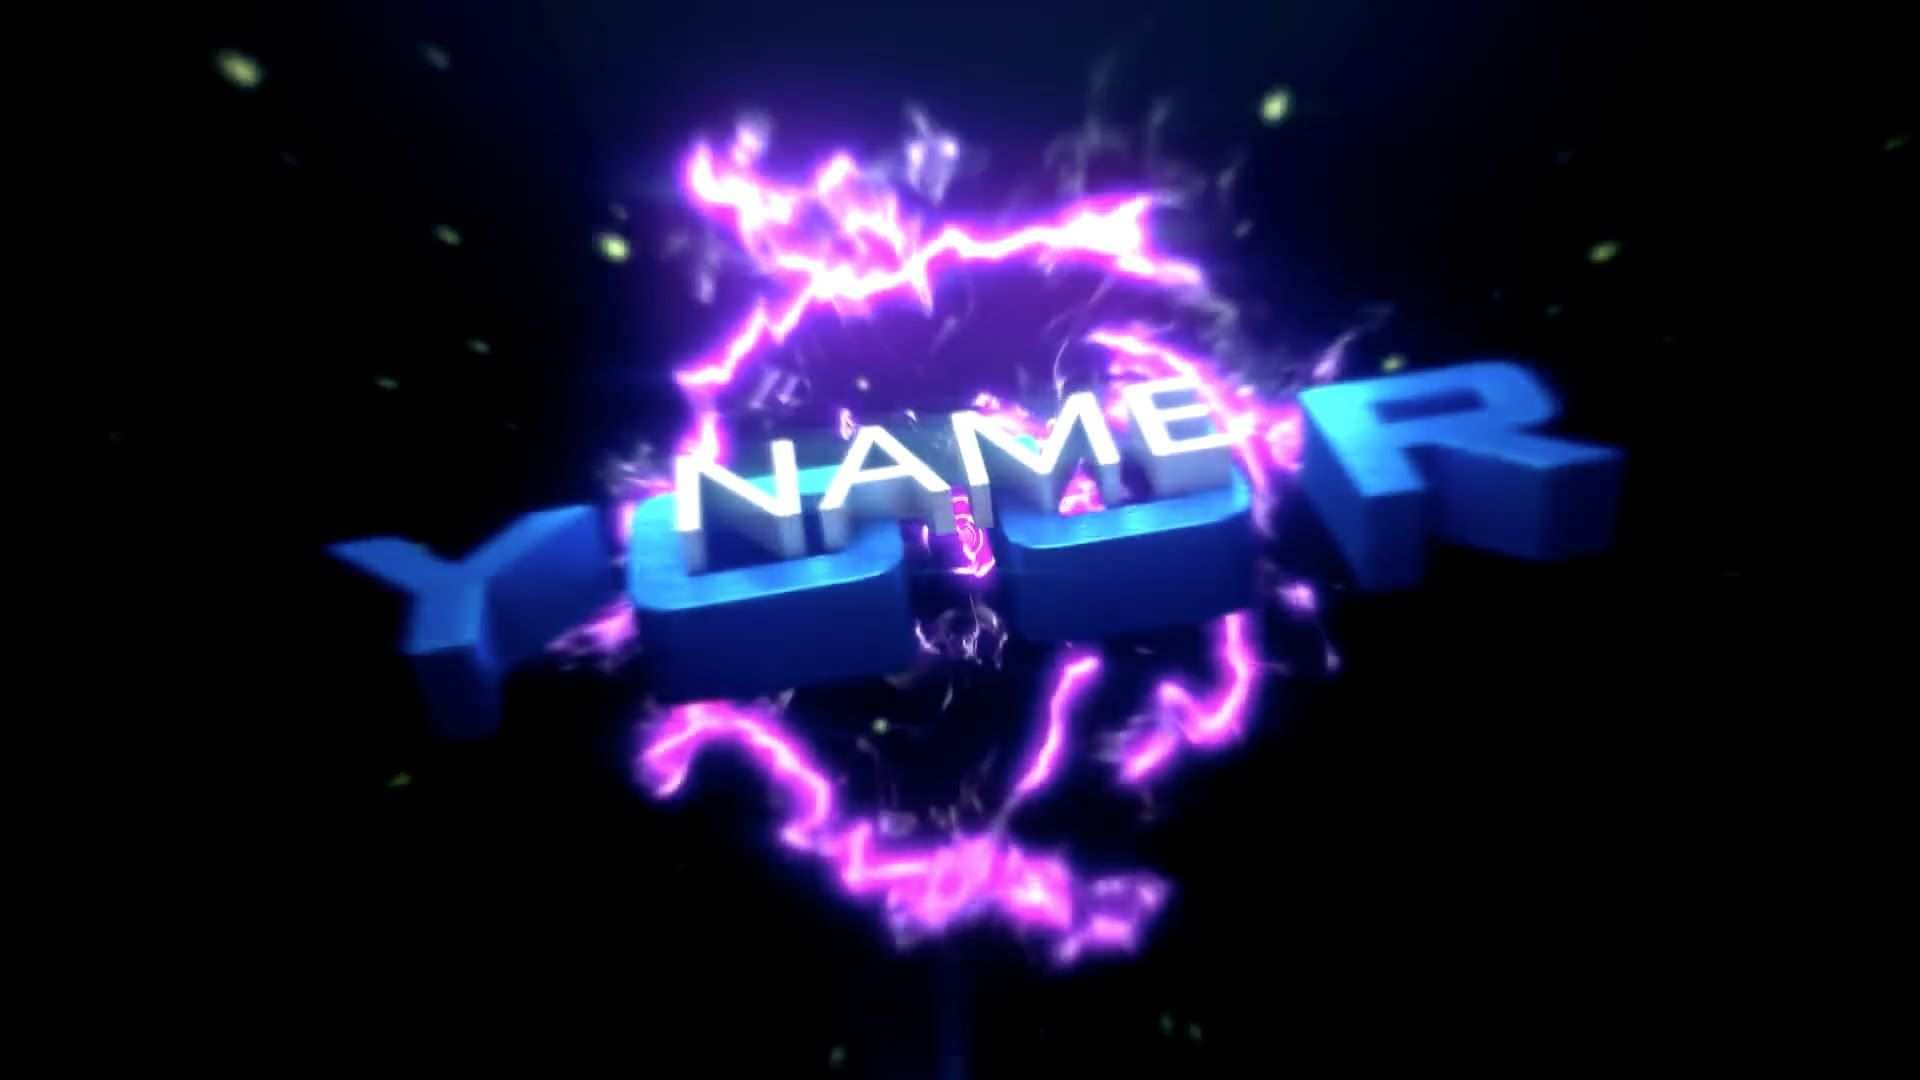 Top 10 Free Intro Templates Sony Vegas After Effects Cinema 4d Youtube Banners Intro Youtube Intro